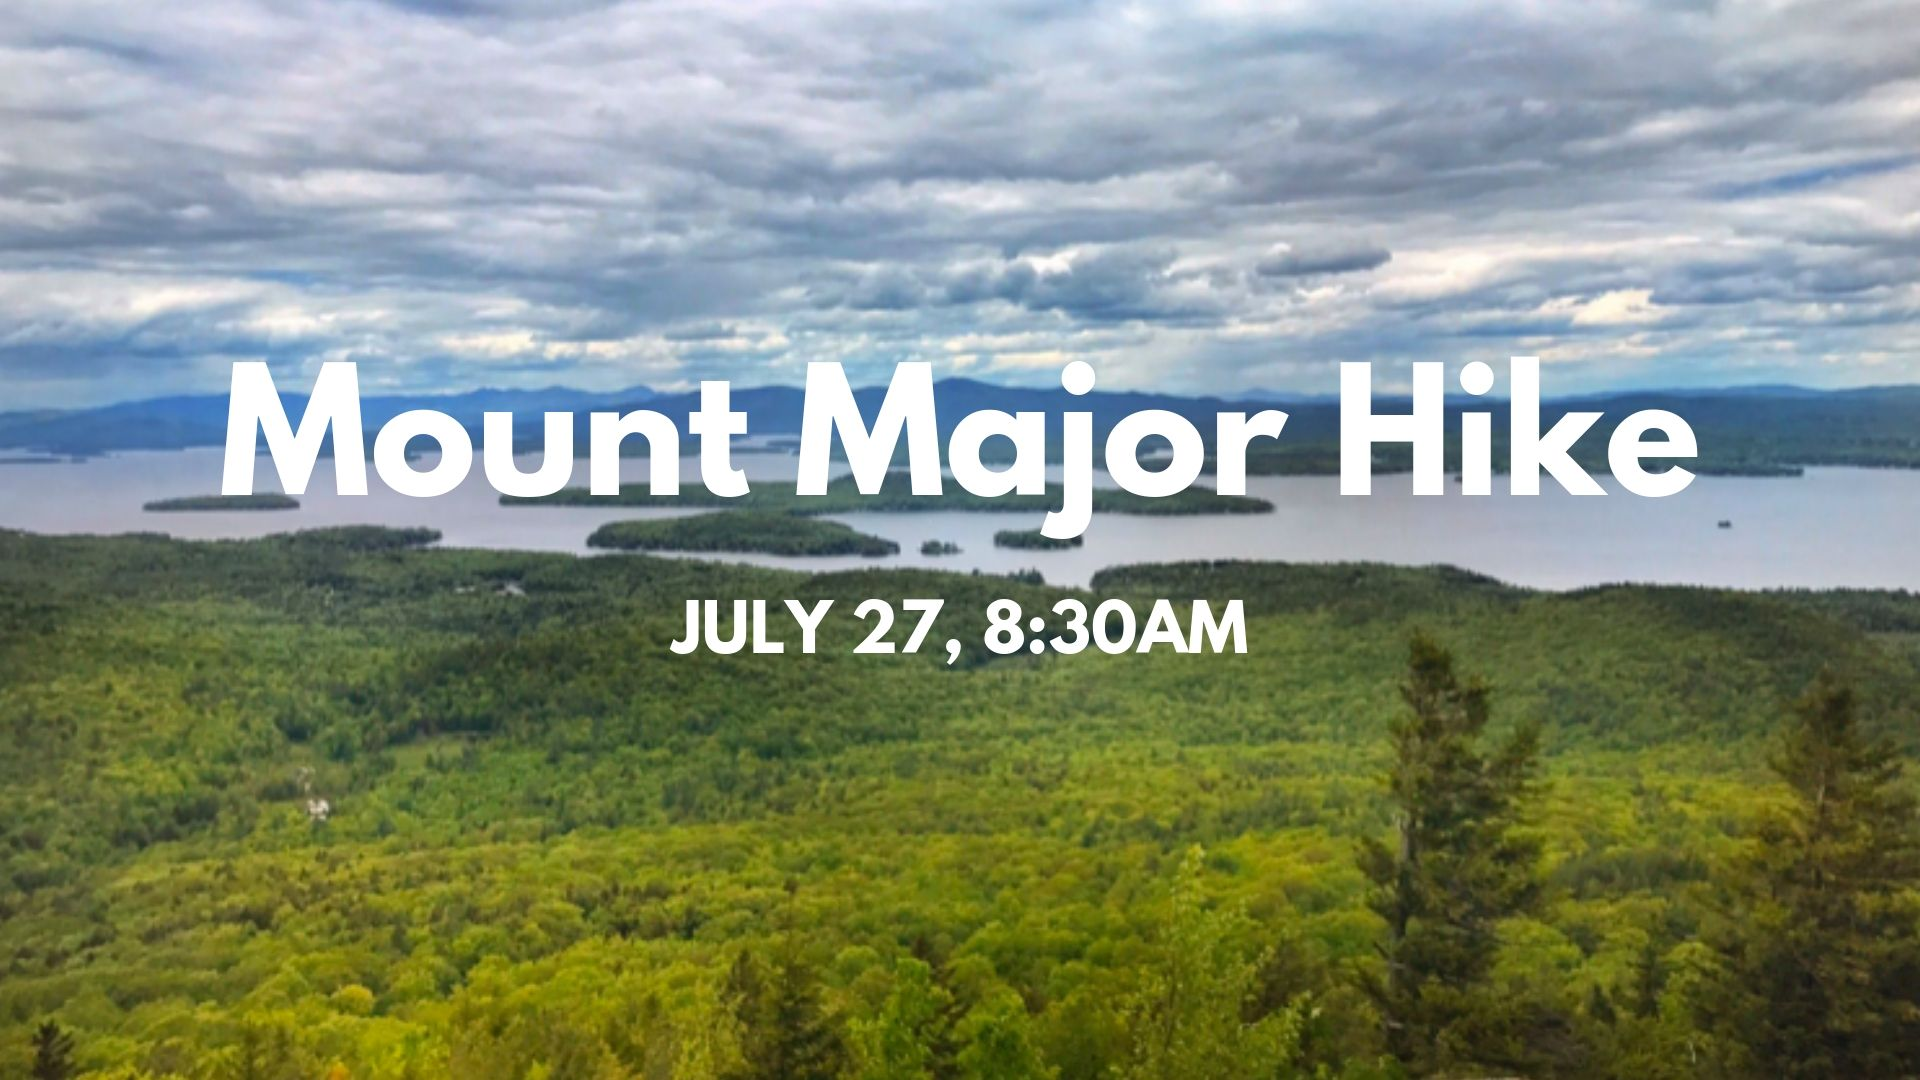 Join us for a hike up Mount Major where we will take in the beautiful views of Lake Winnipesaukee from the summit. Meet up for this moderate 3 mile hike at 8:30AM to begin hiking at 8:45AM.RSVP ON OUR FACEBOOK EVENT.  CLICK HERE  TO GO TO OUR PAGE.